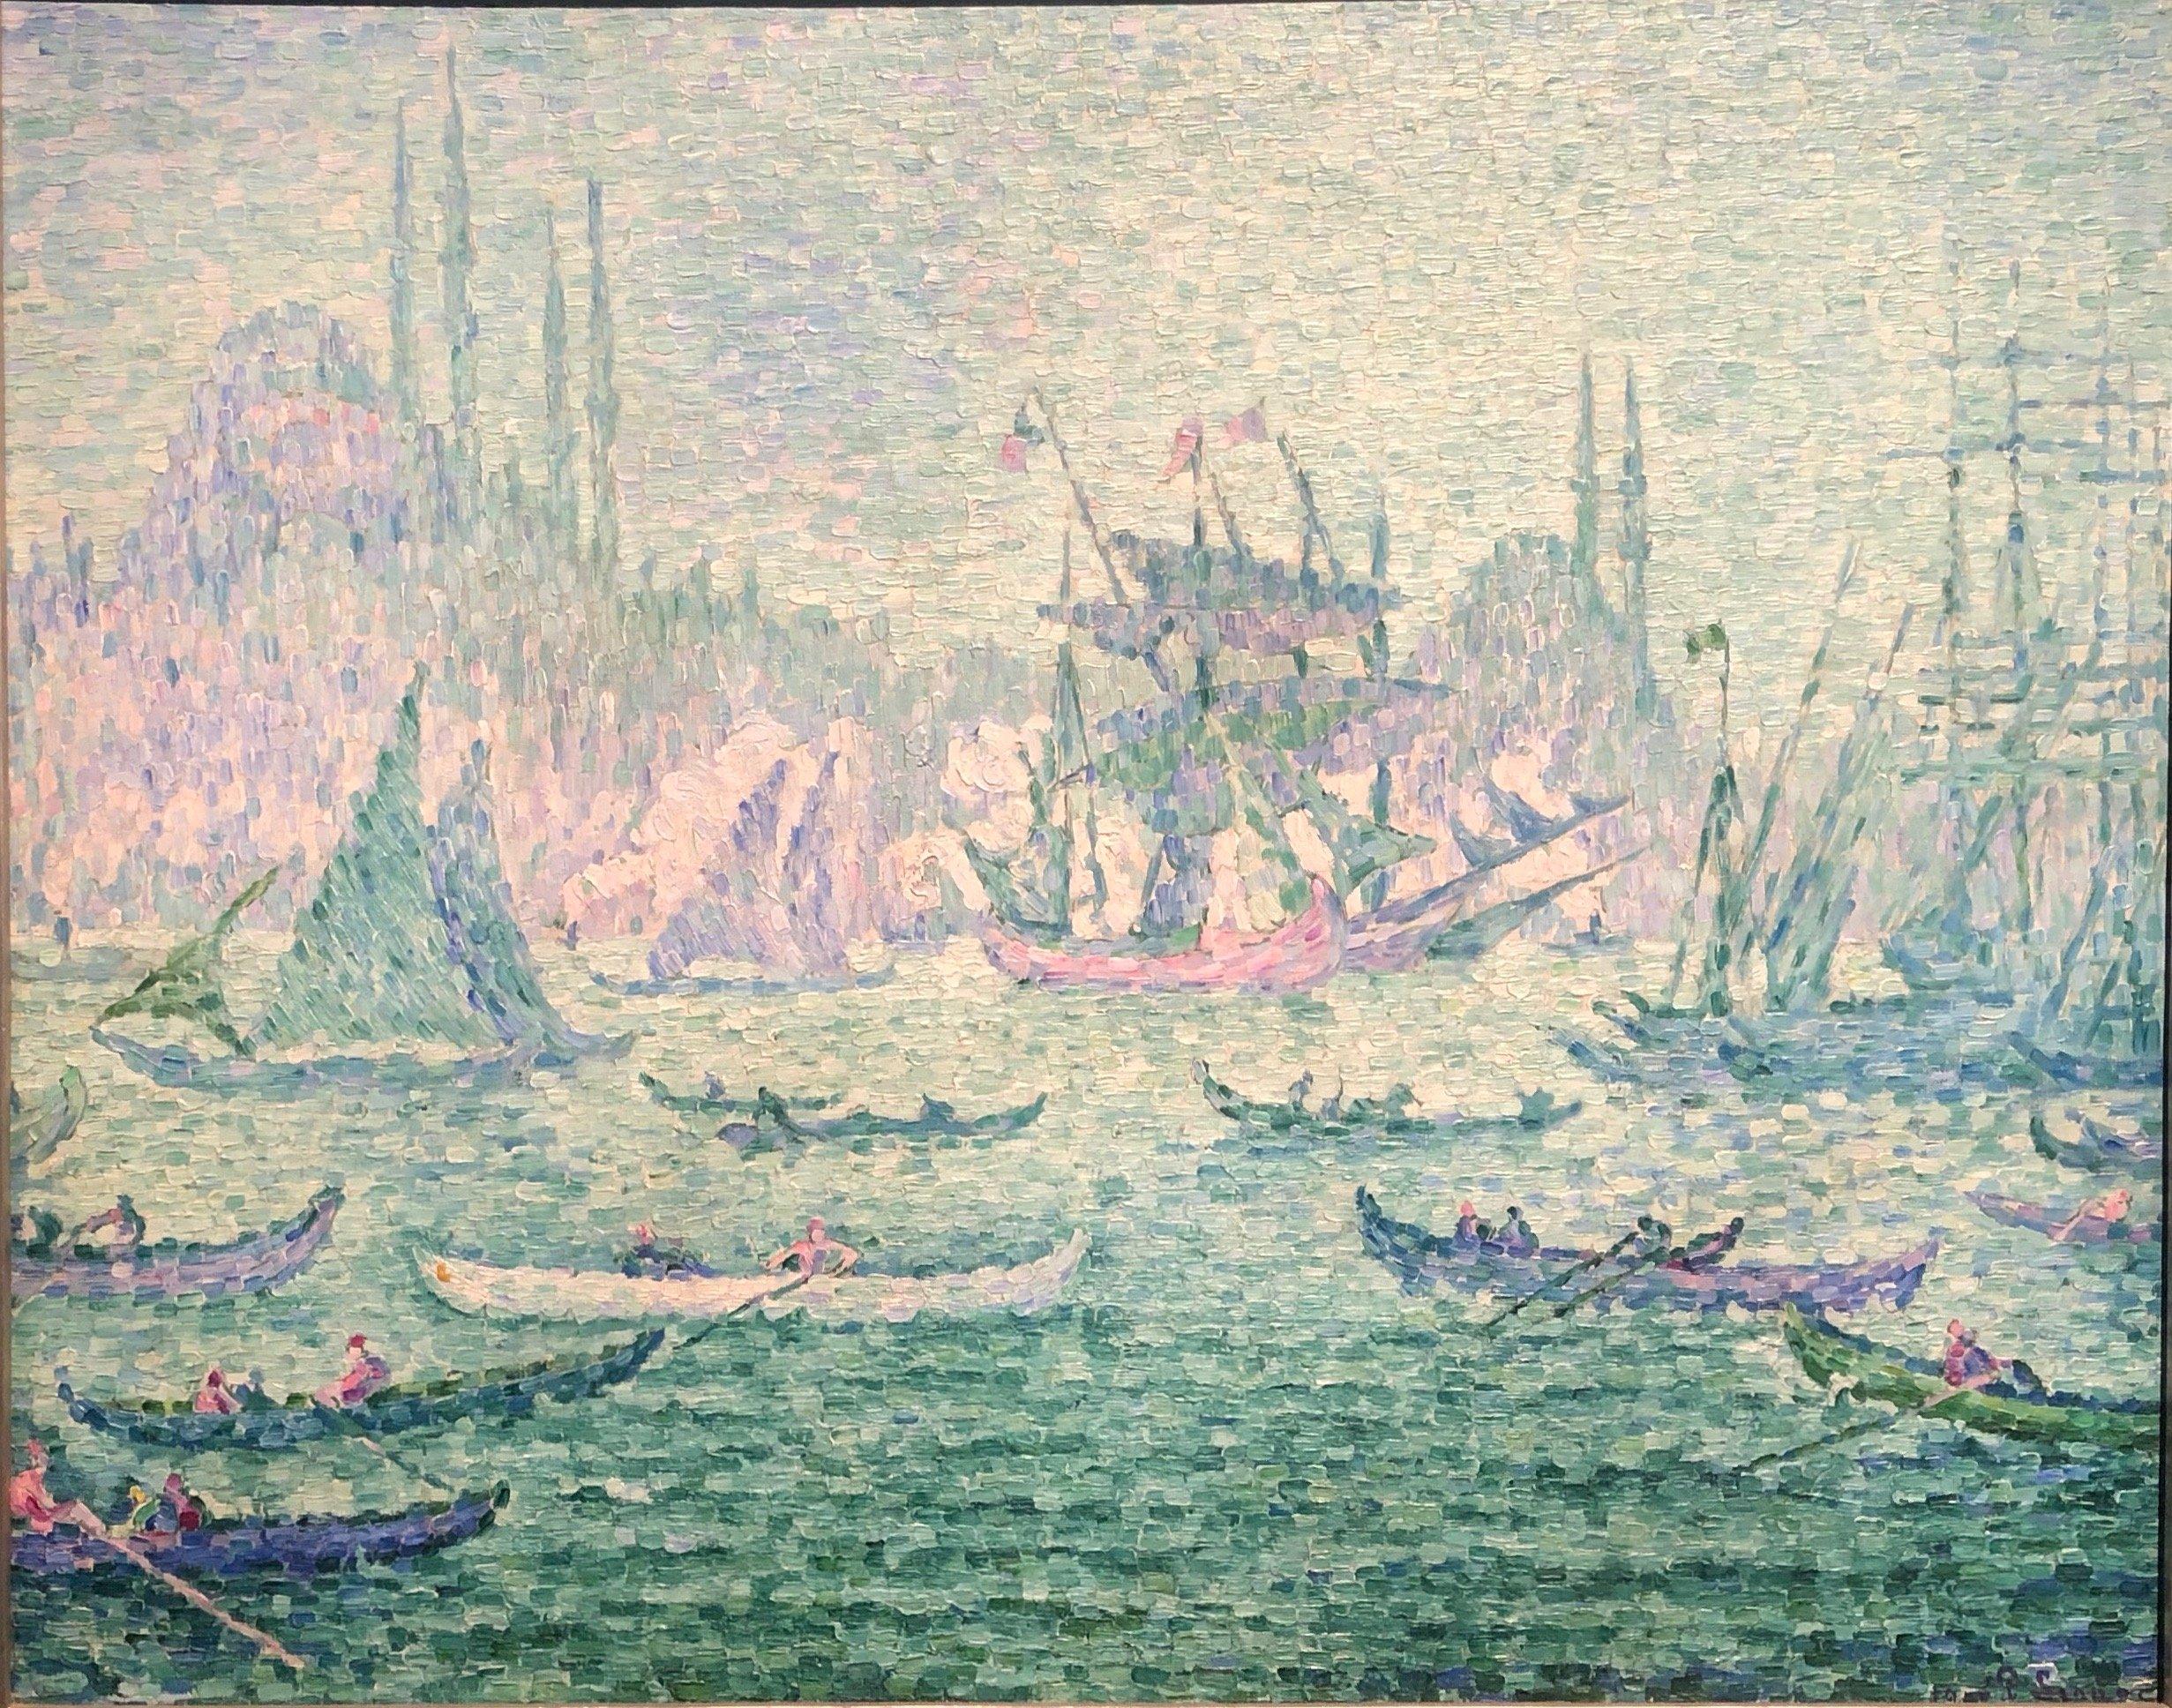 Paul Signac, 'View of the Golden Horn (The Caïques),' 1907. (Courtesy of Wallraf Richartz Museum)